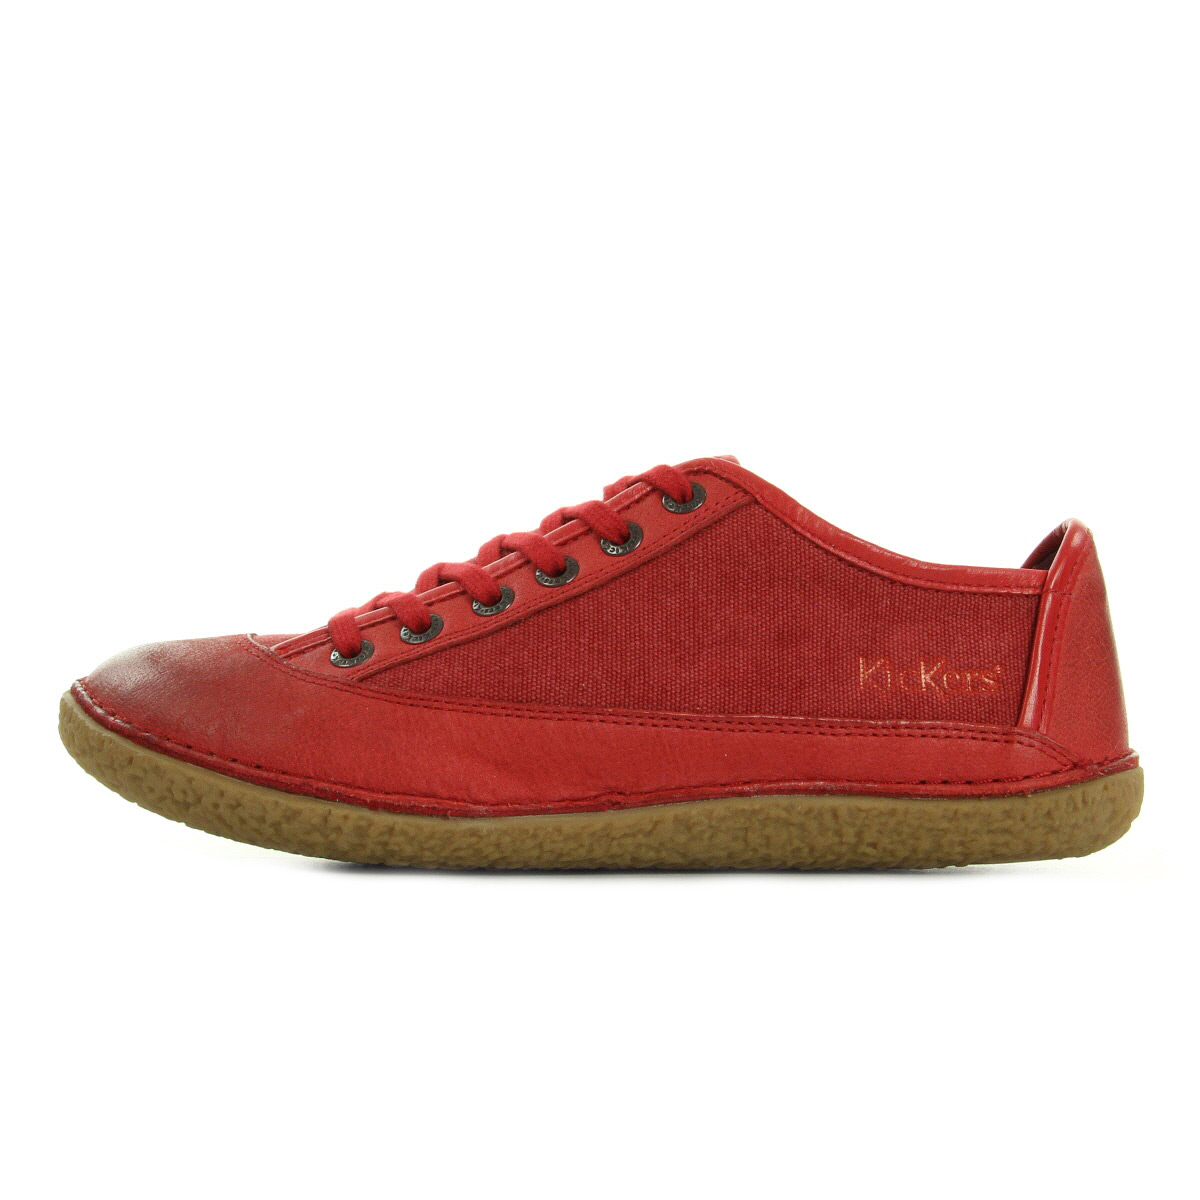 Kickers Hollyday Rouge 419954504, Baskets mode femme